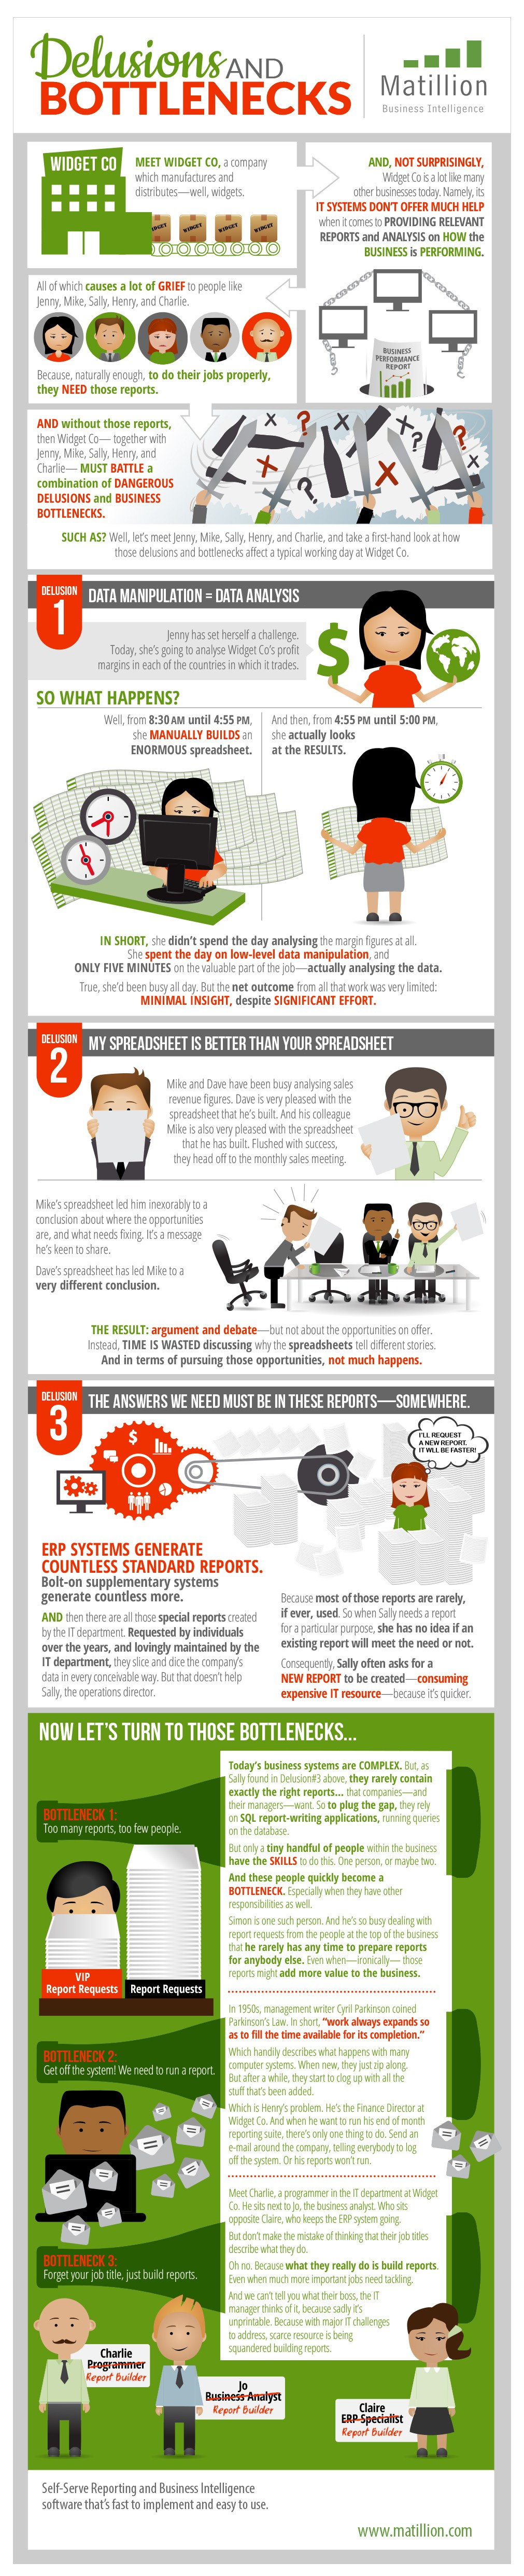 Design an awesome infographic for this Cloud software company